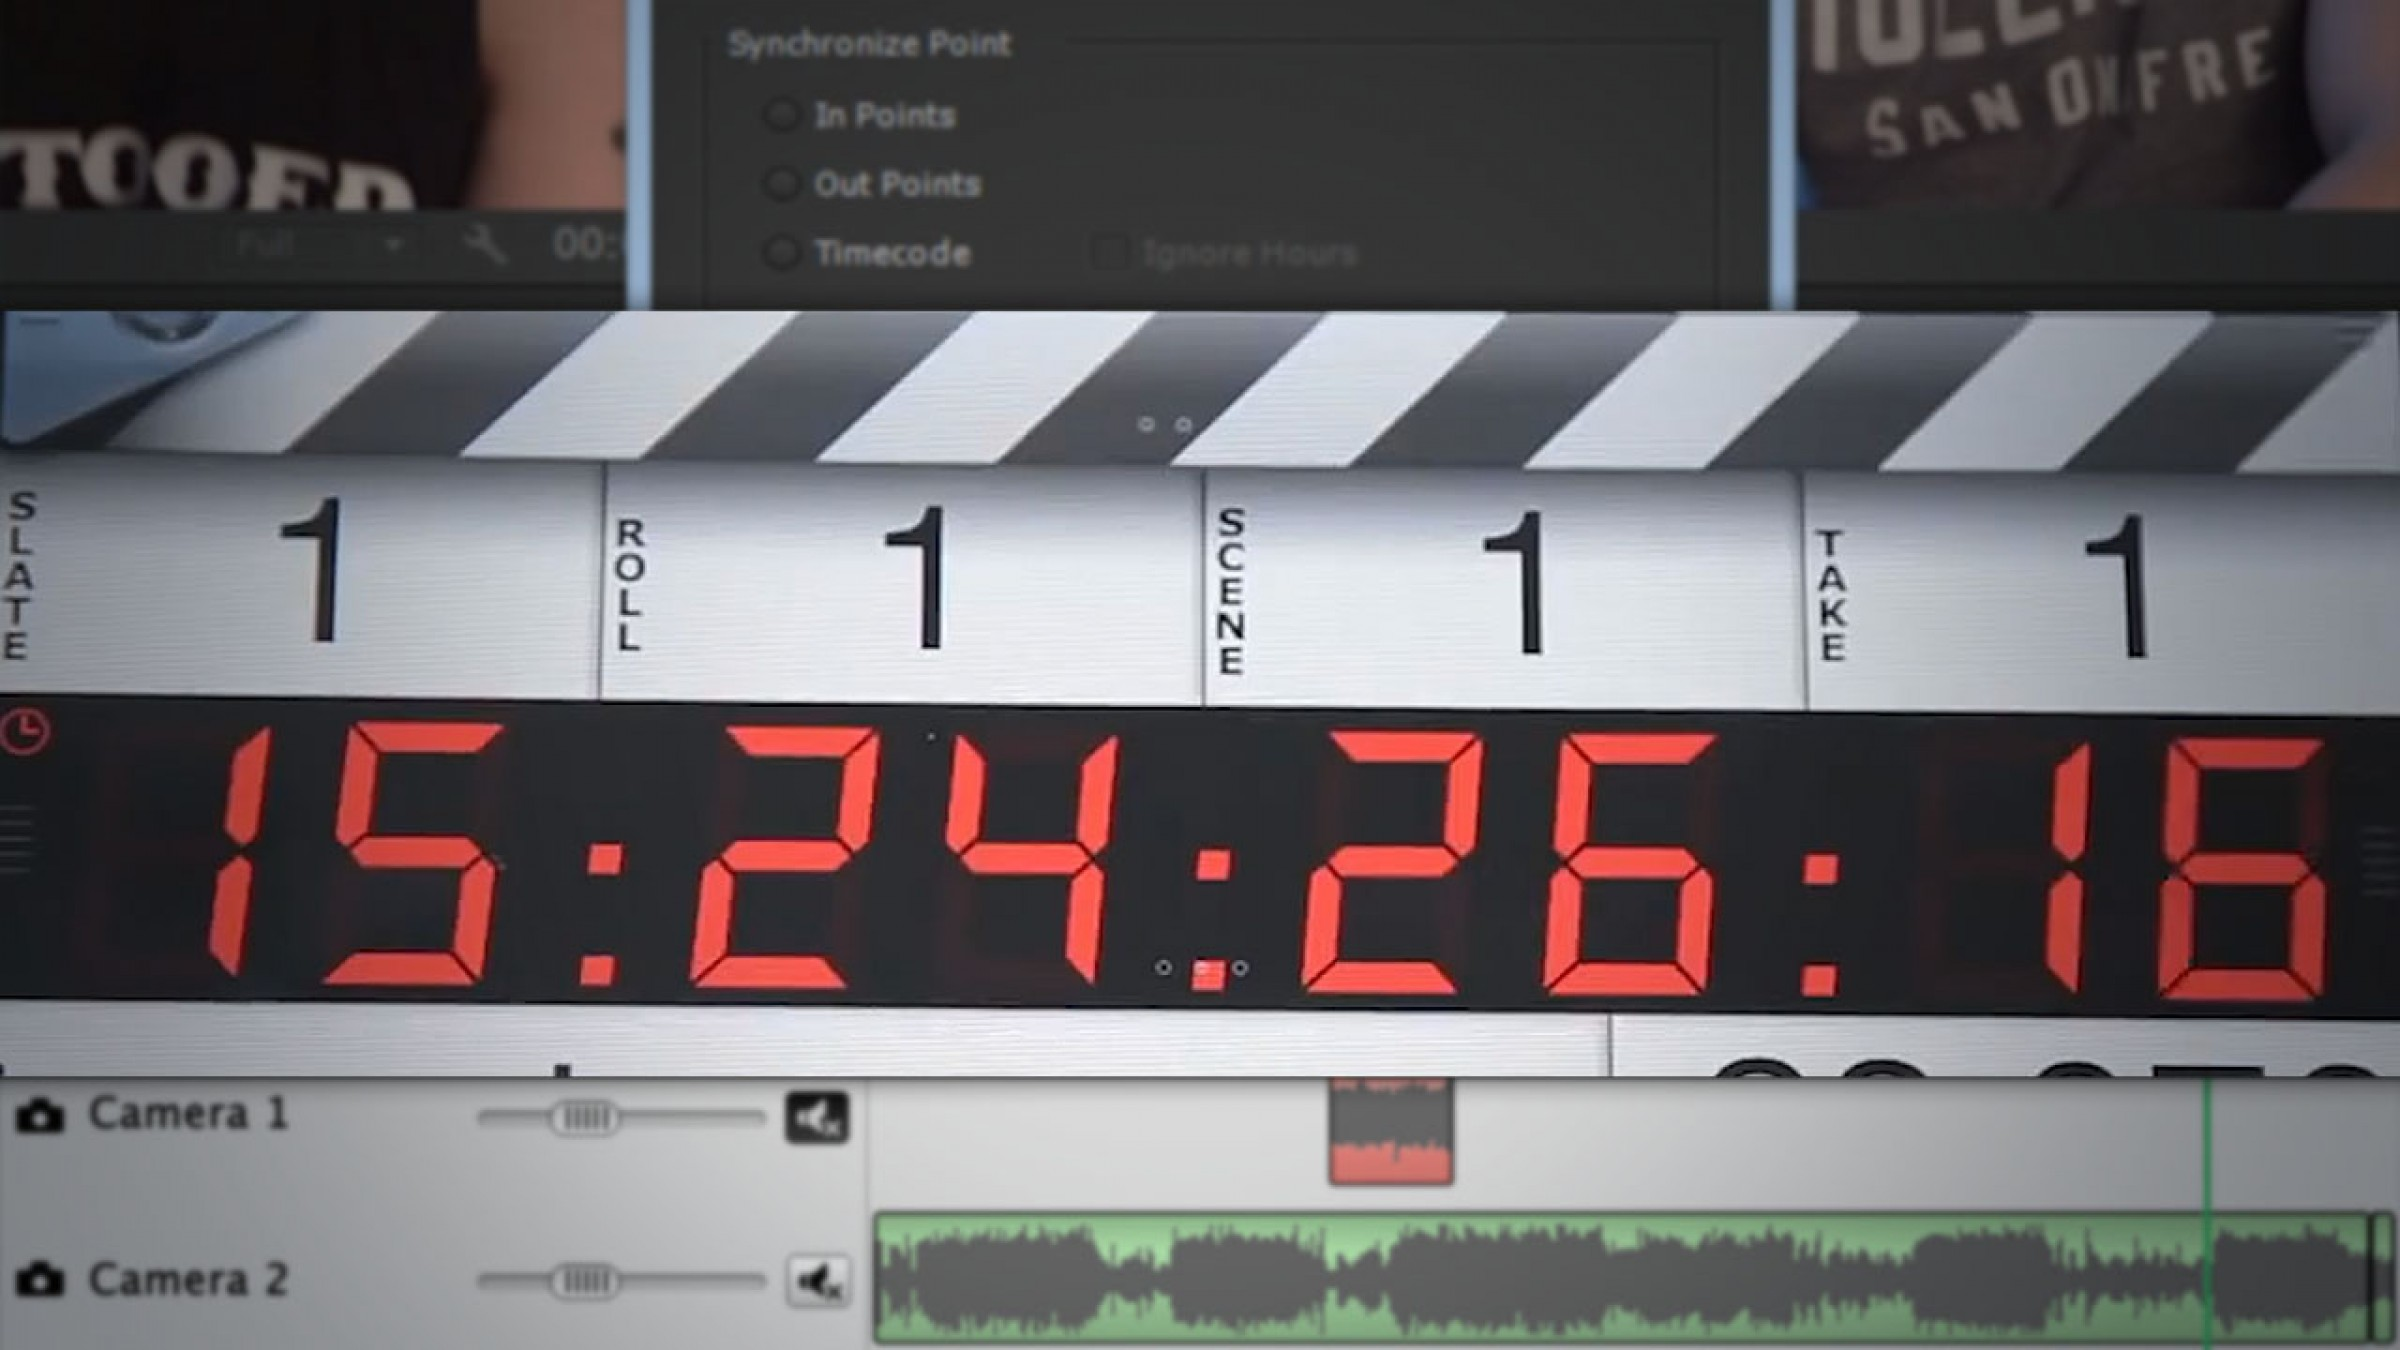 Do You Need to Sync Some Audio? Here Are a Few Quick ...